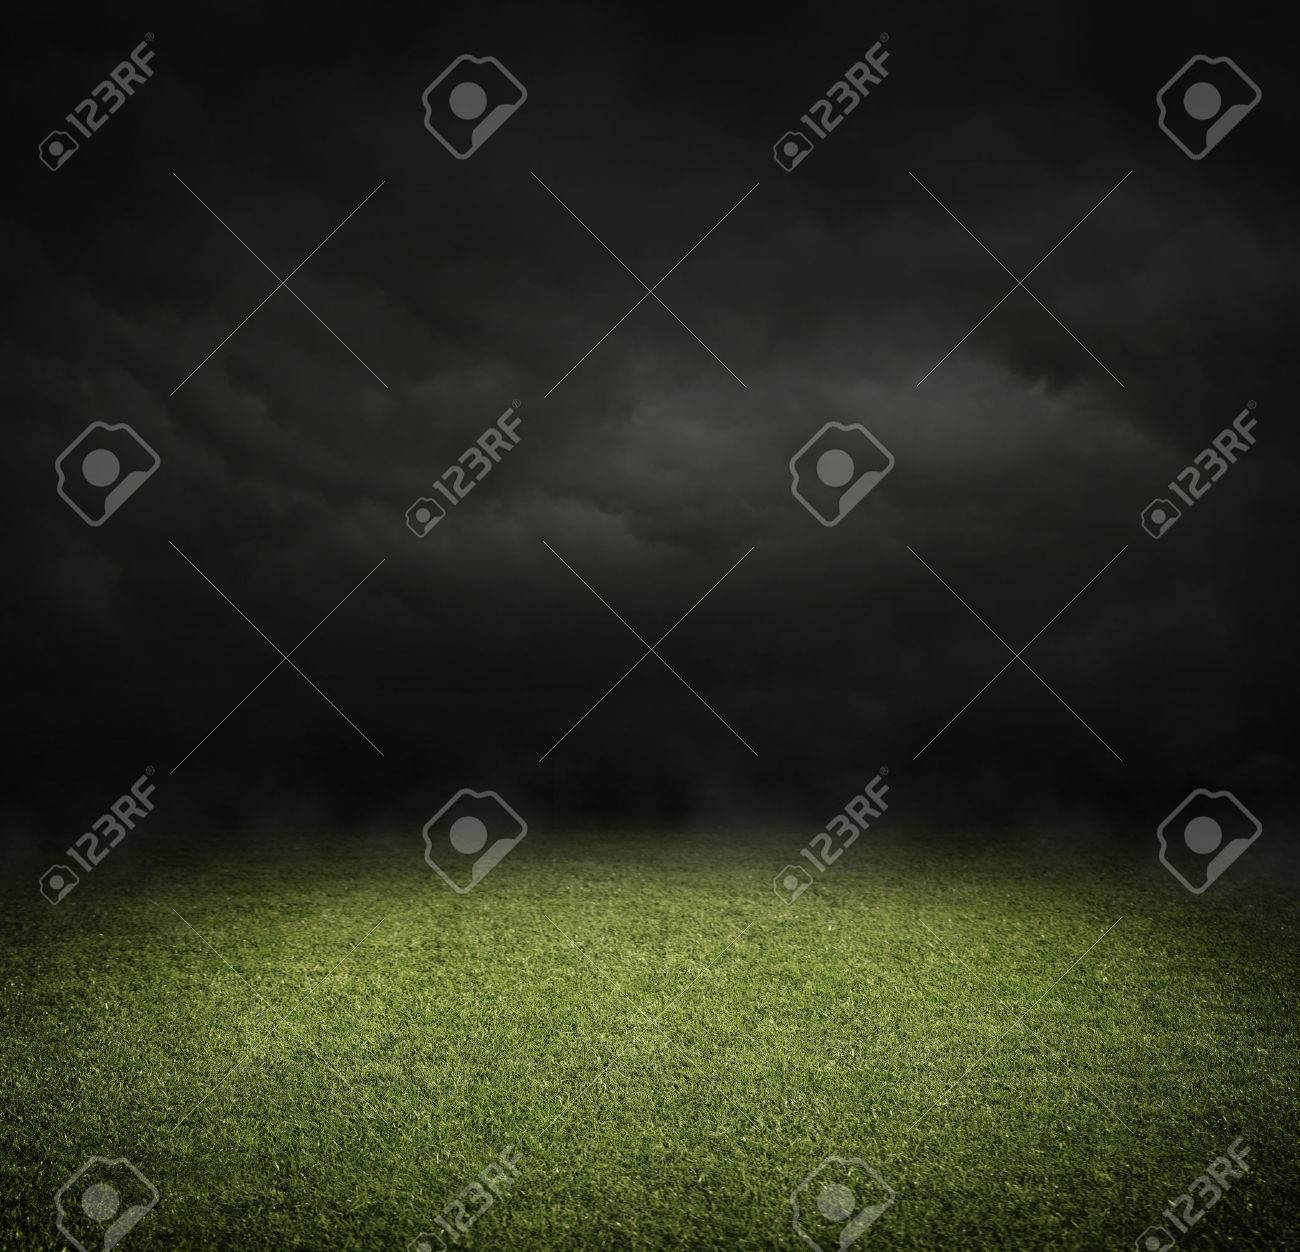 Soccer or football field at night with copy space Standard-Bild - 46074228